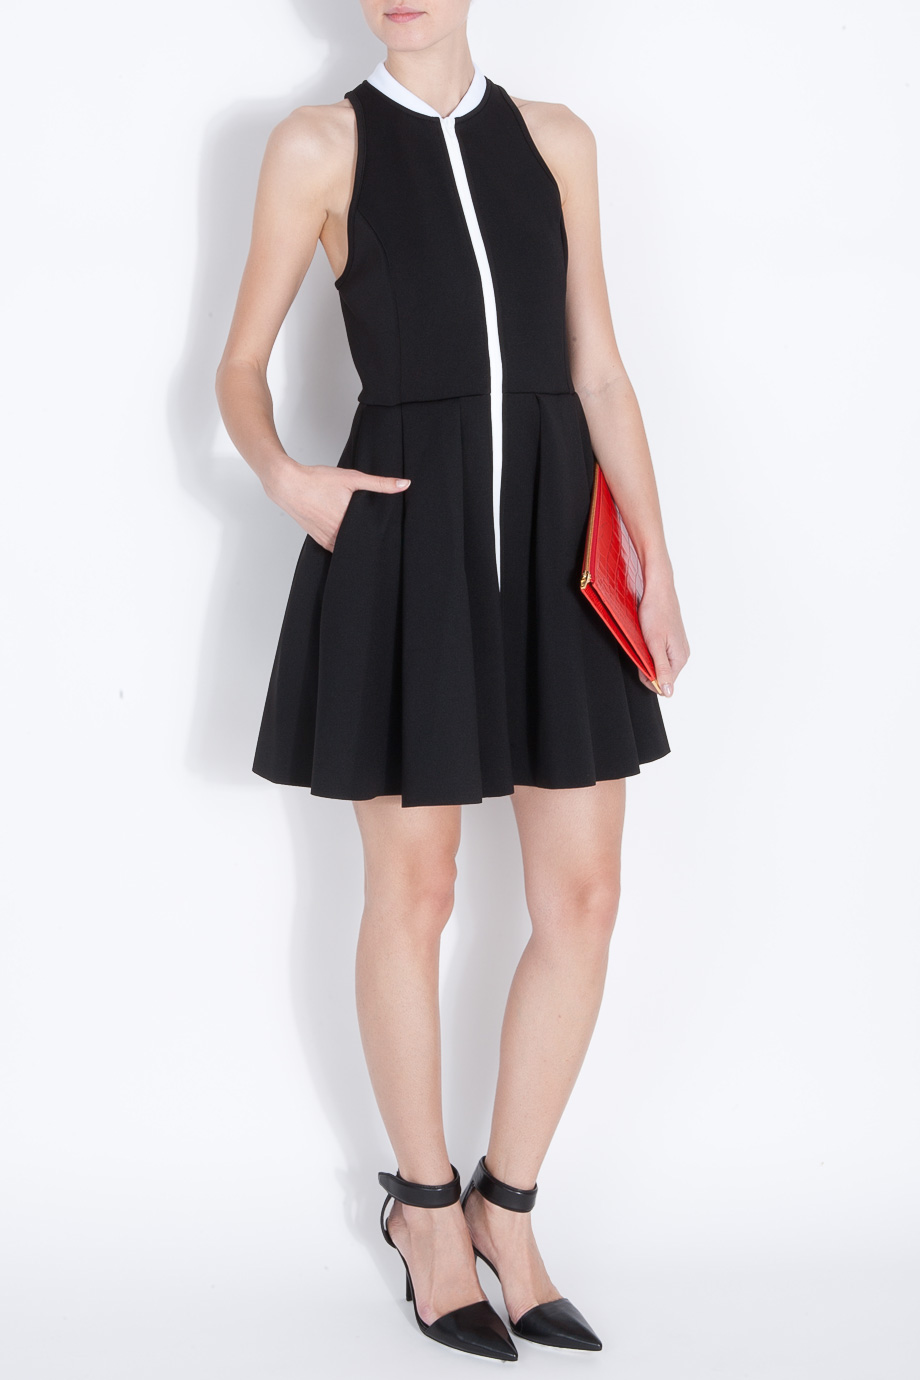 Fall Sales! Right now t by alexander wang short dresses is 36% Off. Now: $ Was: $